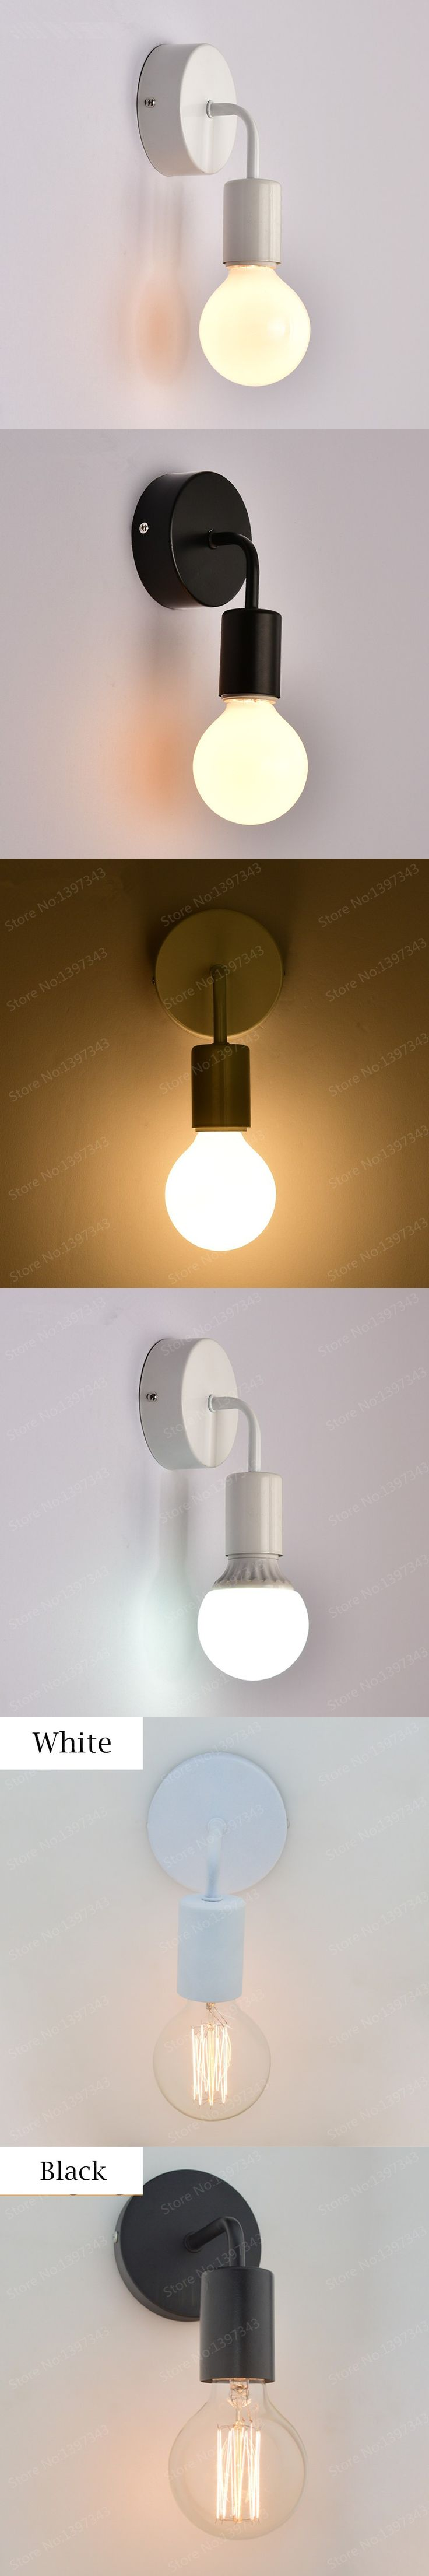 Bathroom Lighting Zones. Bathroom Lighting Zones Home Style Tips ...